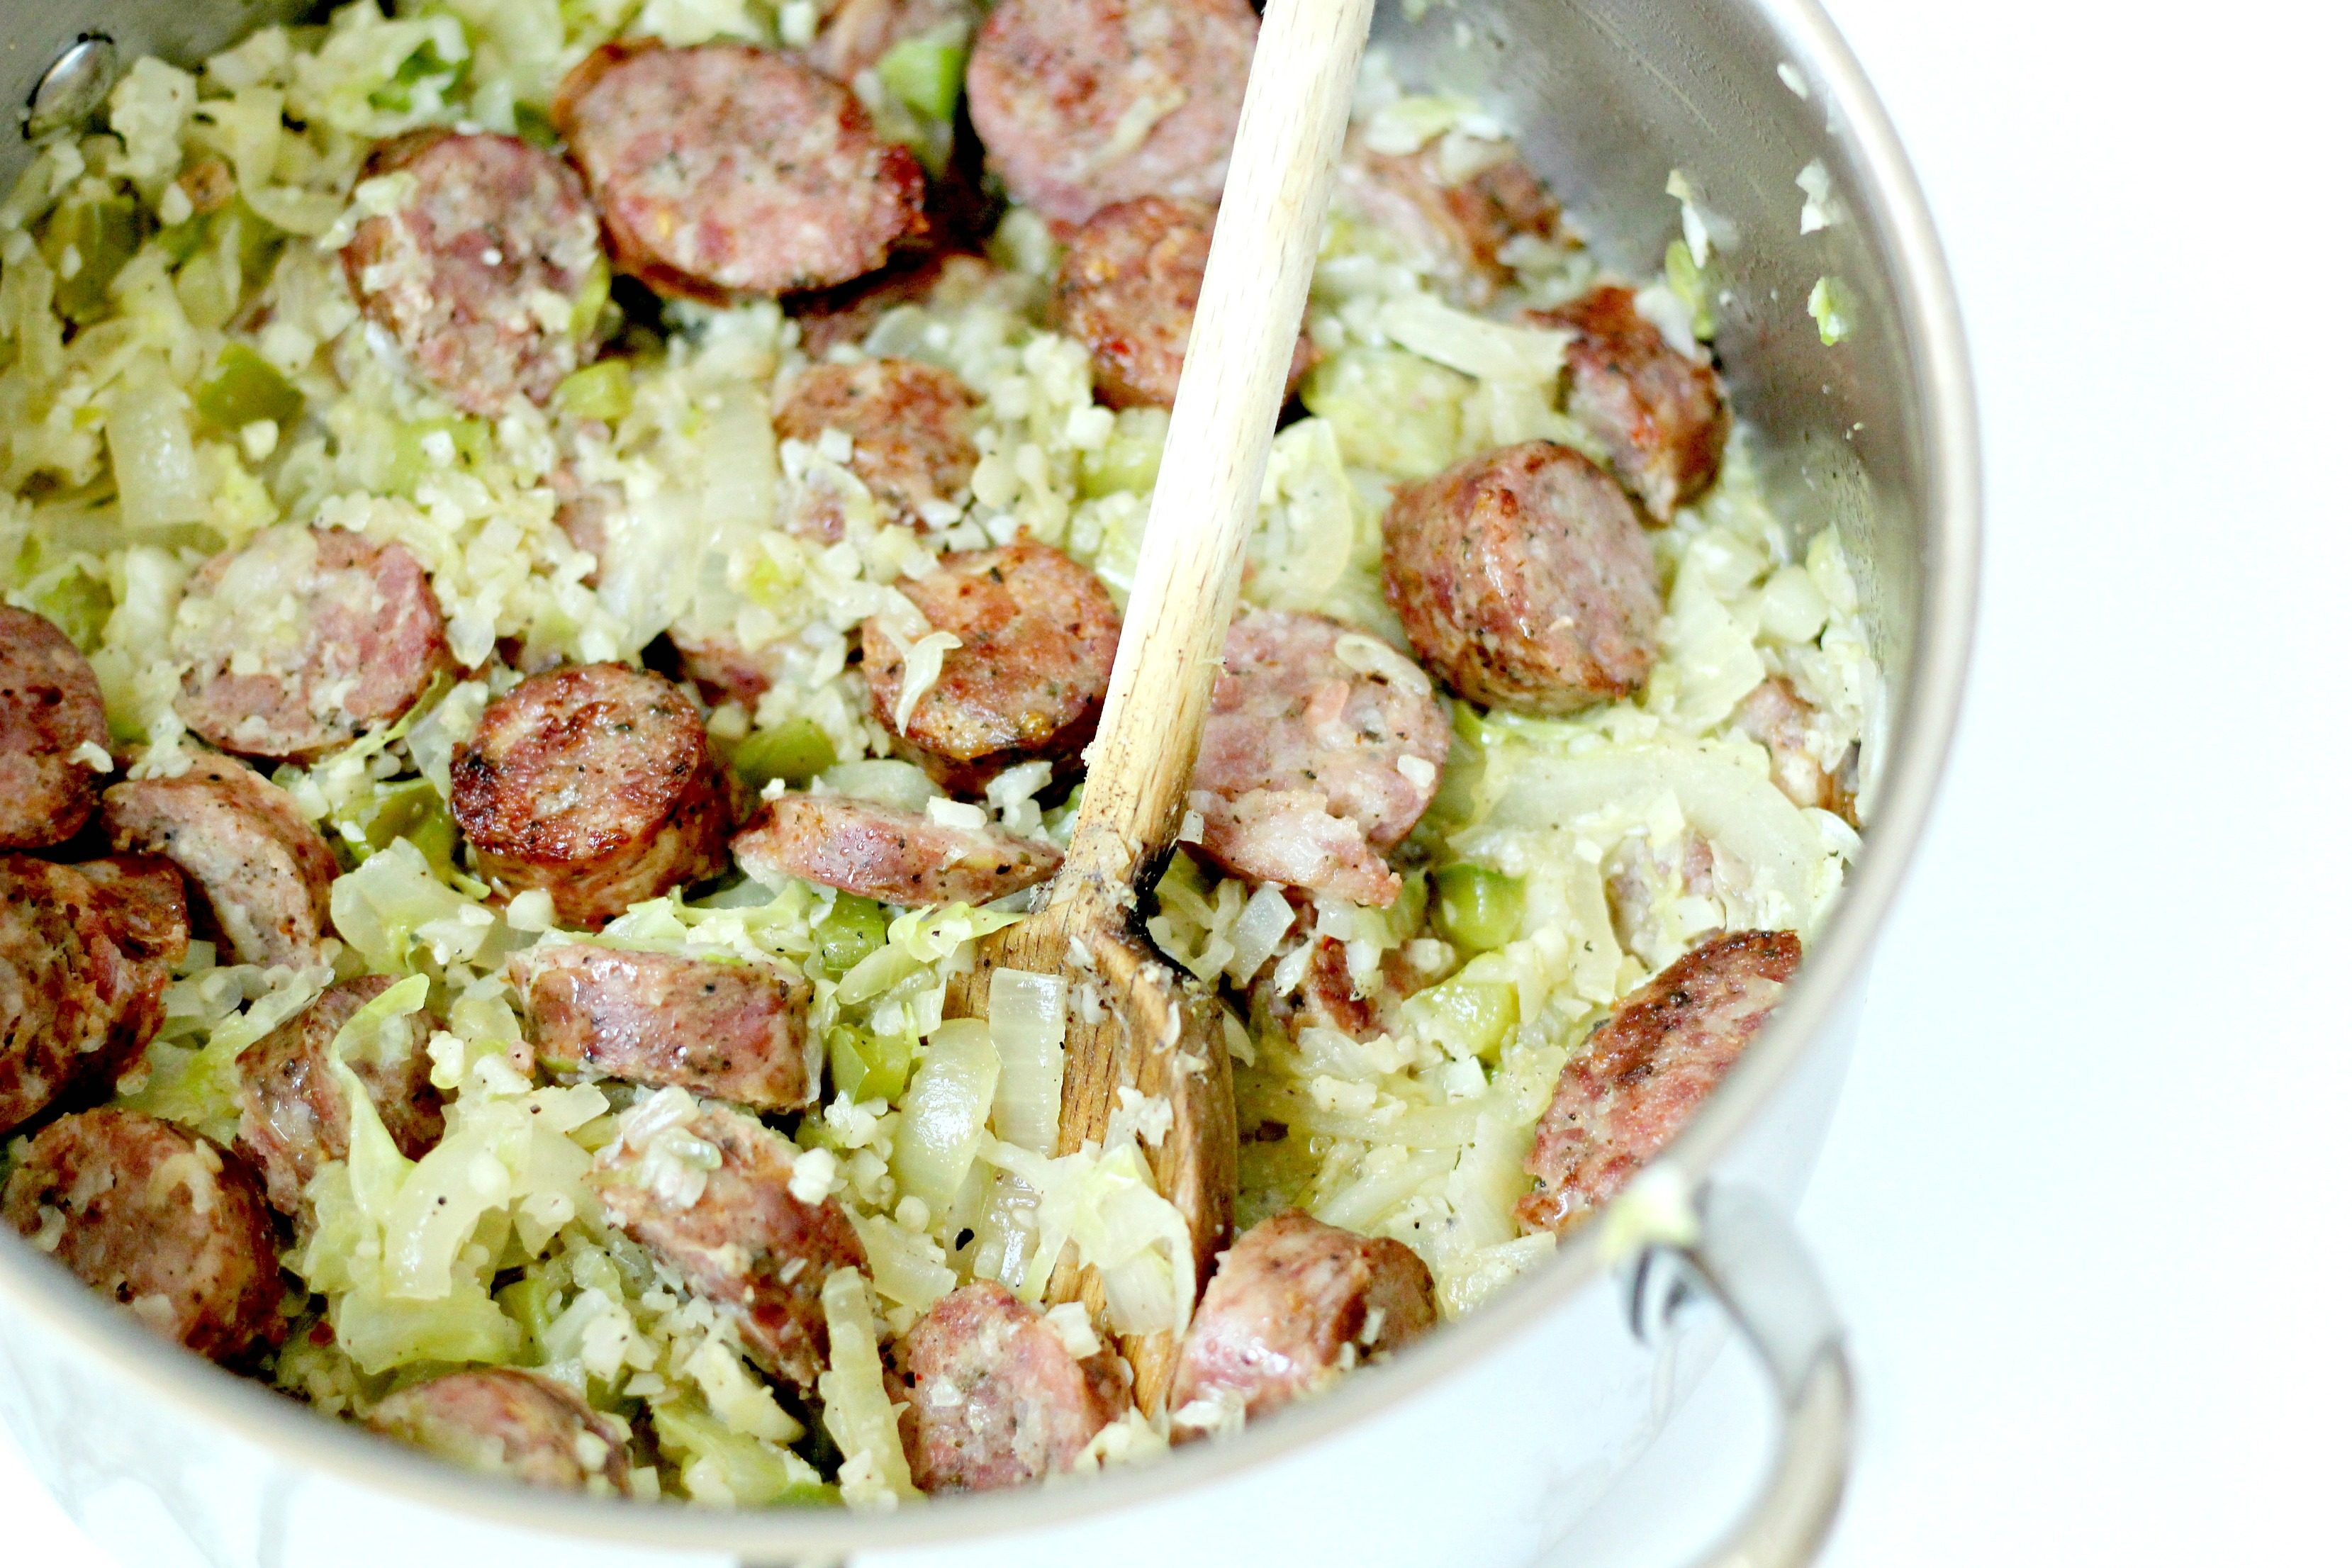 Recipe for Olivier with sausage